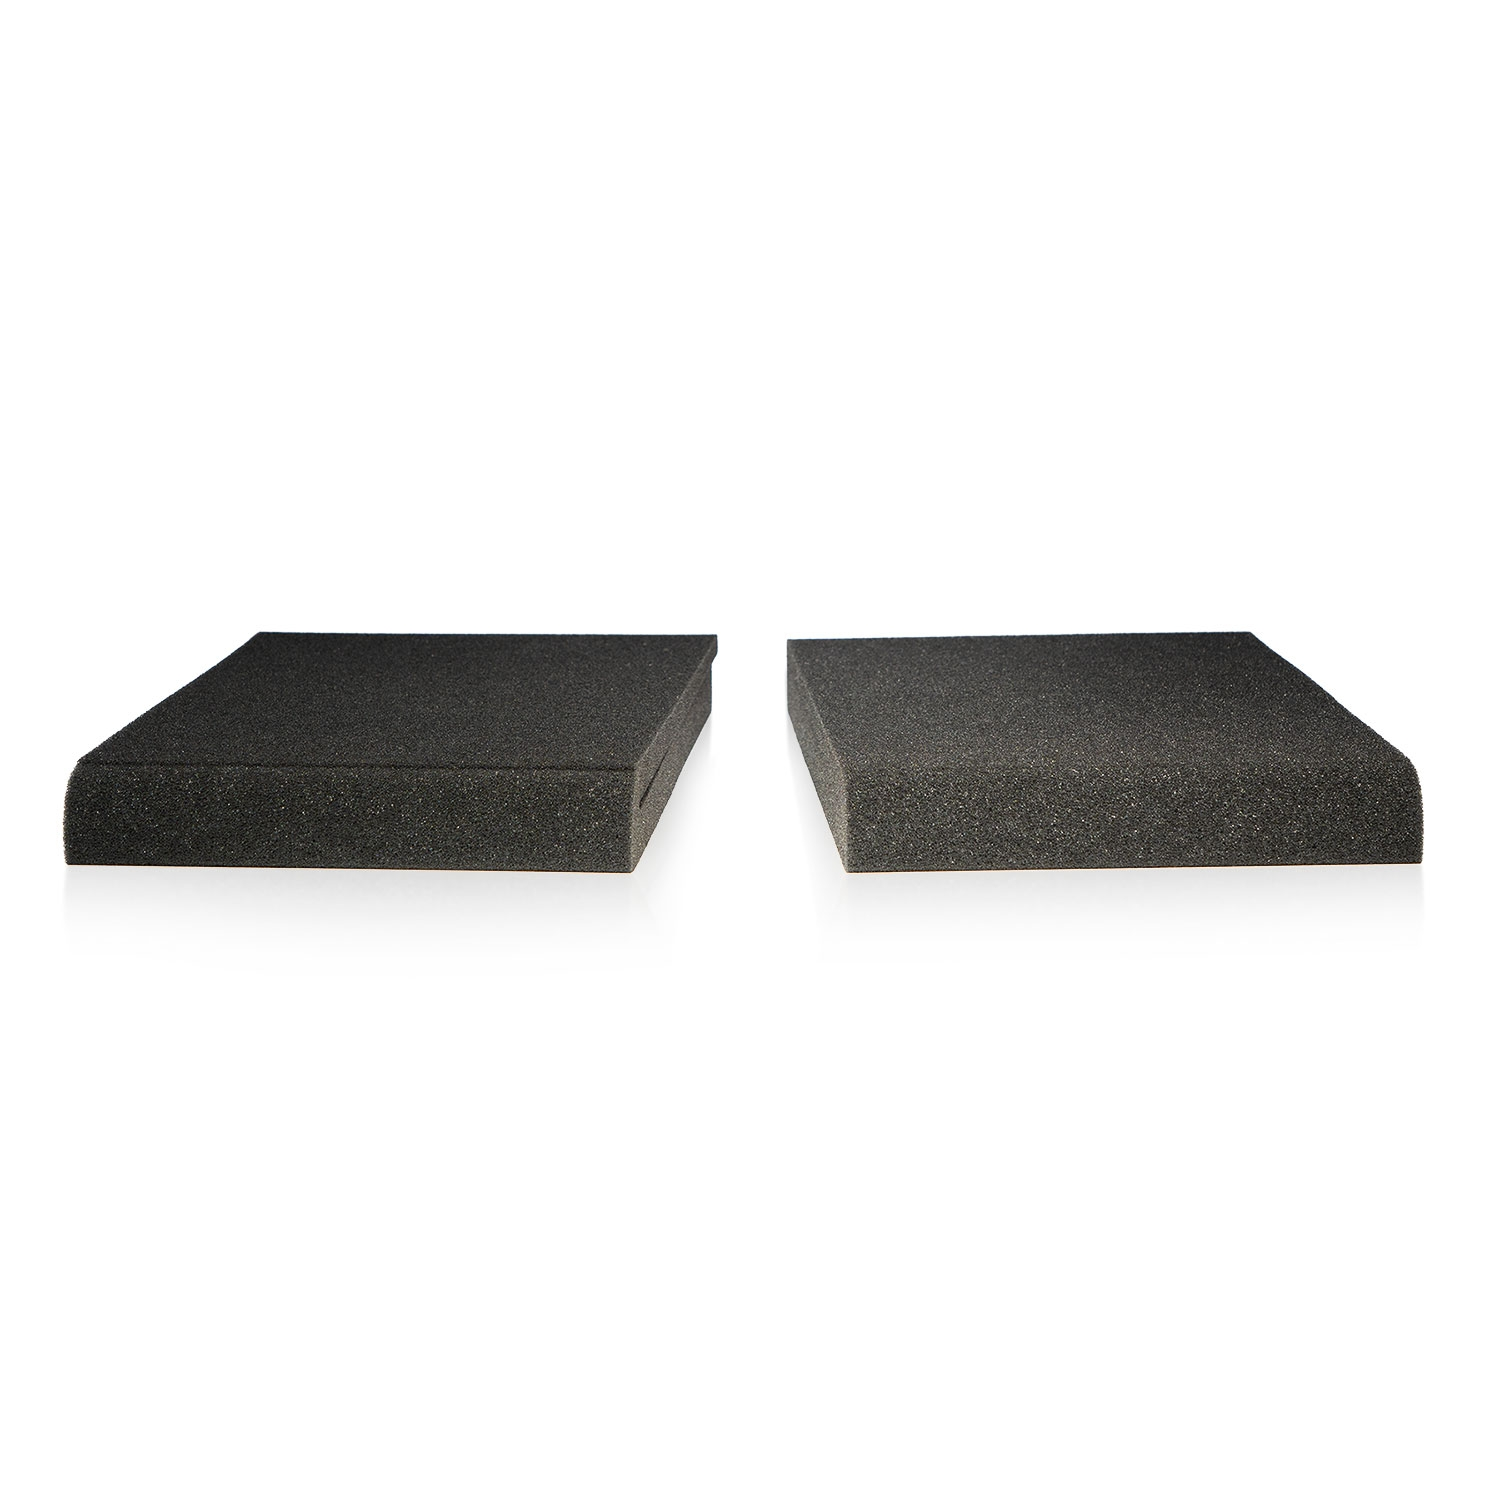 High Density Foam Speaker Isolation Pads